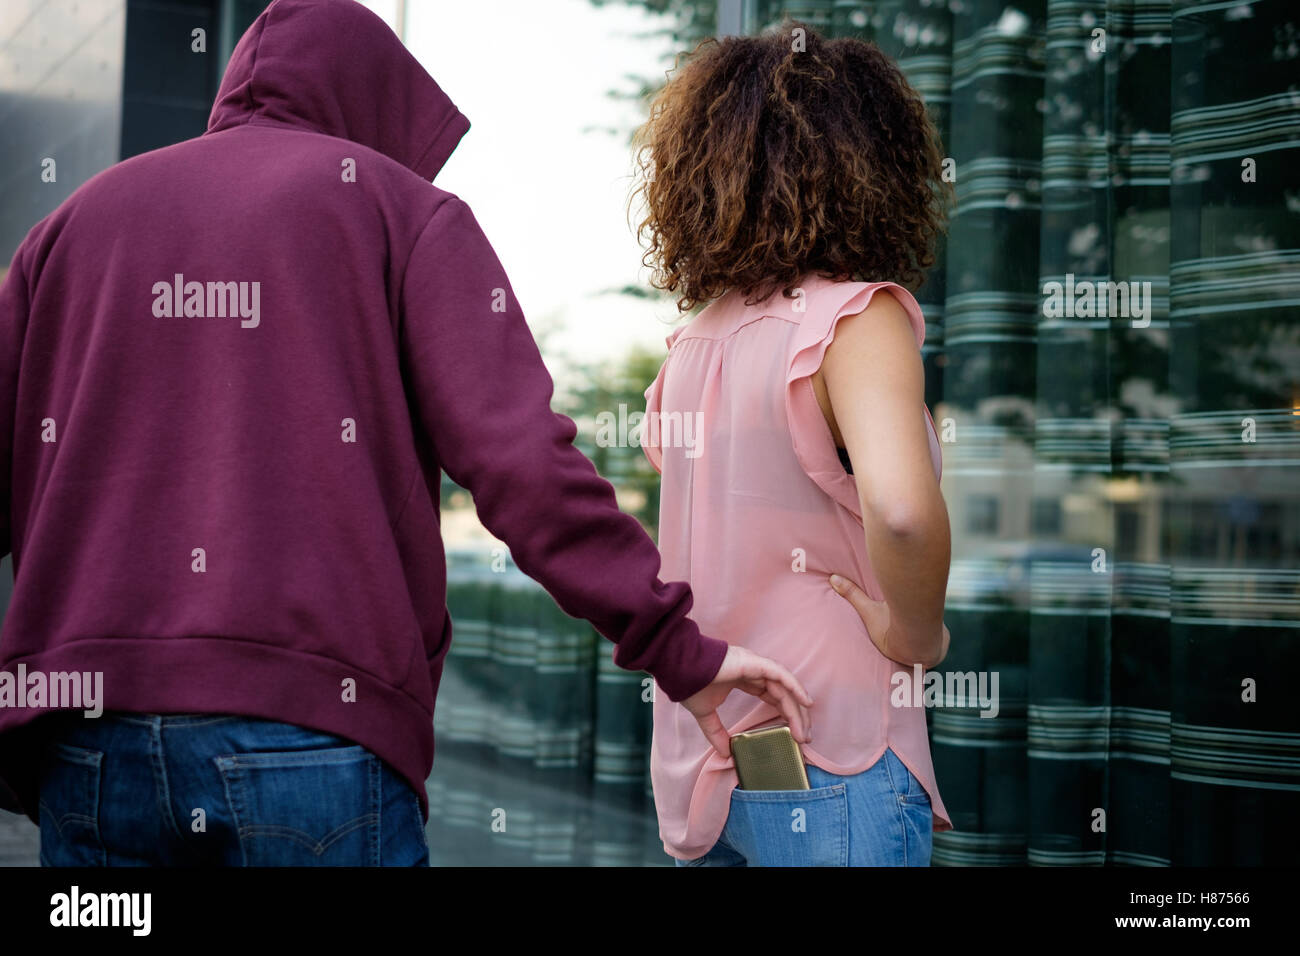 Thief stealing the mobile phone from the jeans pocket of a distracted woman - Stock Image